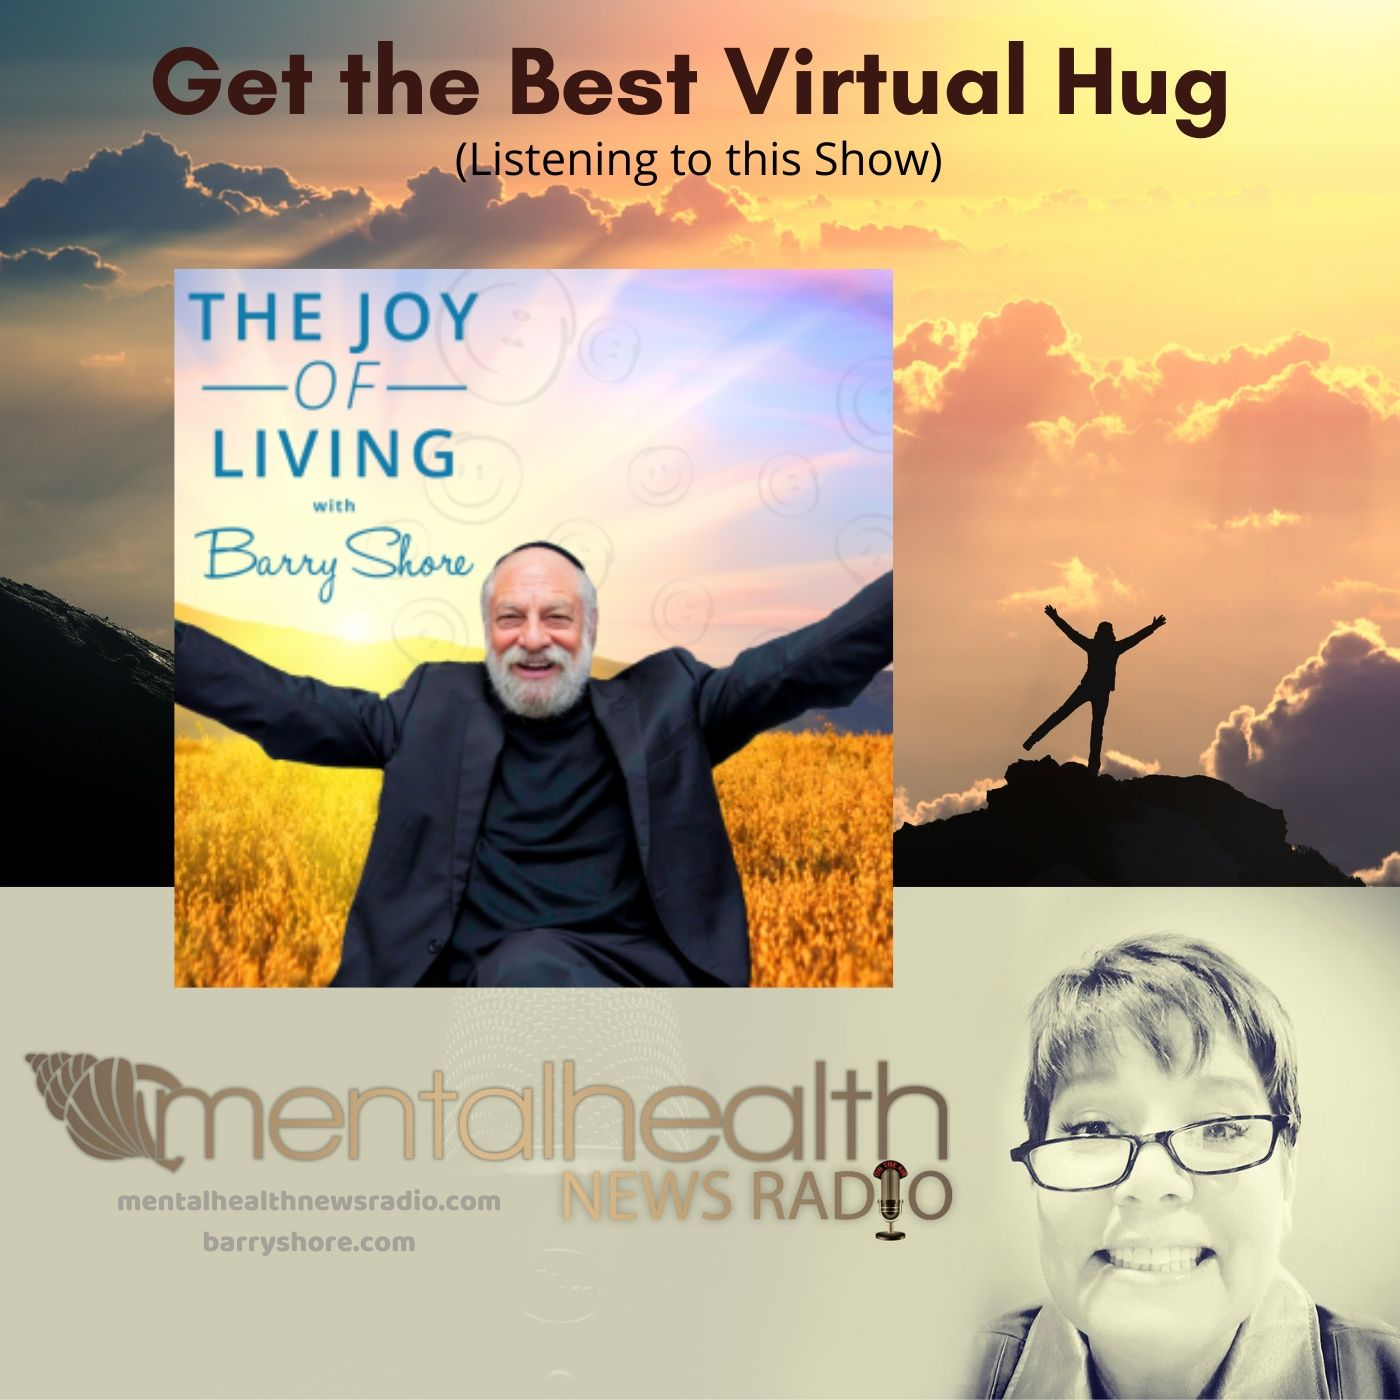 Mental Health News Radio - Get the Best Virtual Hug (Listening to this Show) with Barry Shore